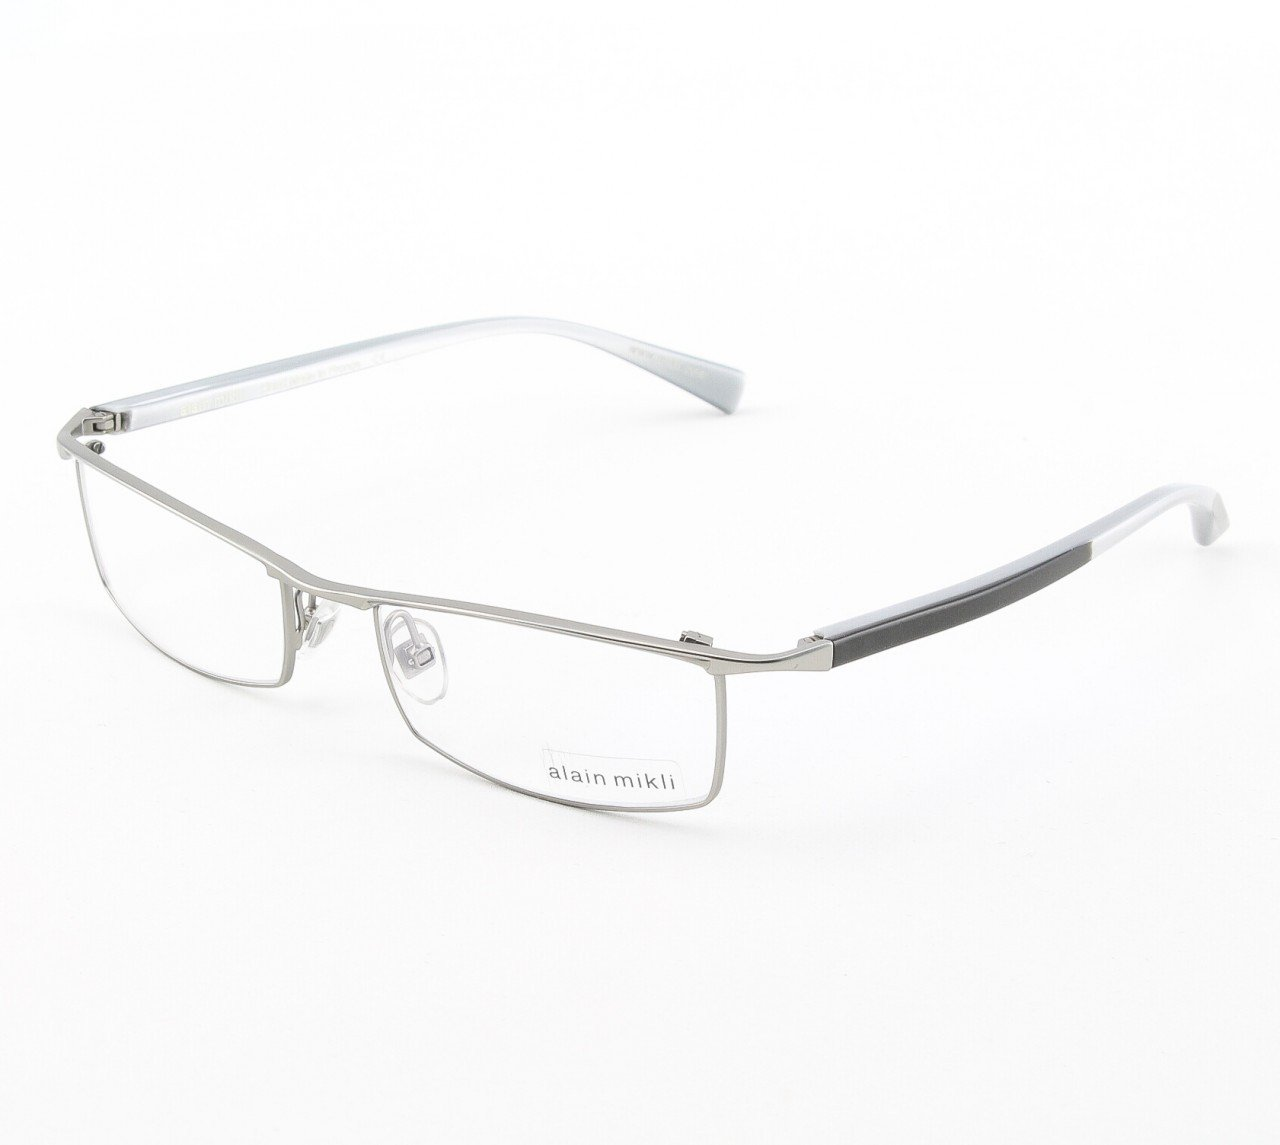 Alain Mikli Eyeglasses AL0770 Col. 12 Matte Silver with Black and Silver Temples